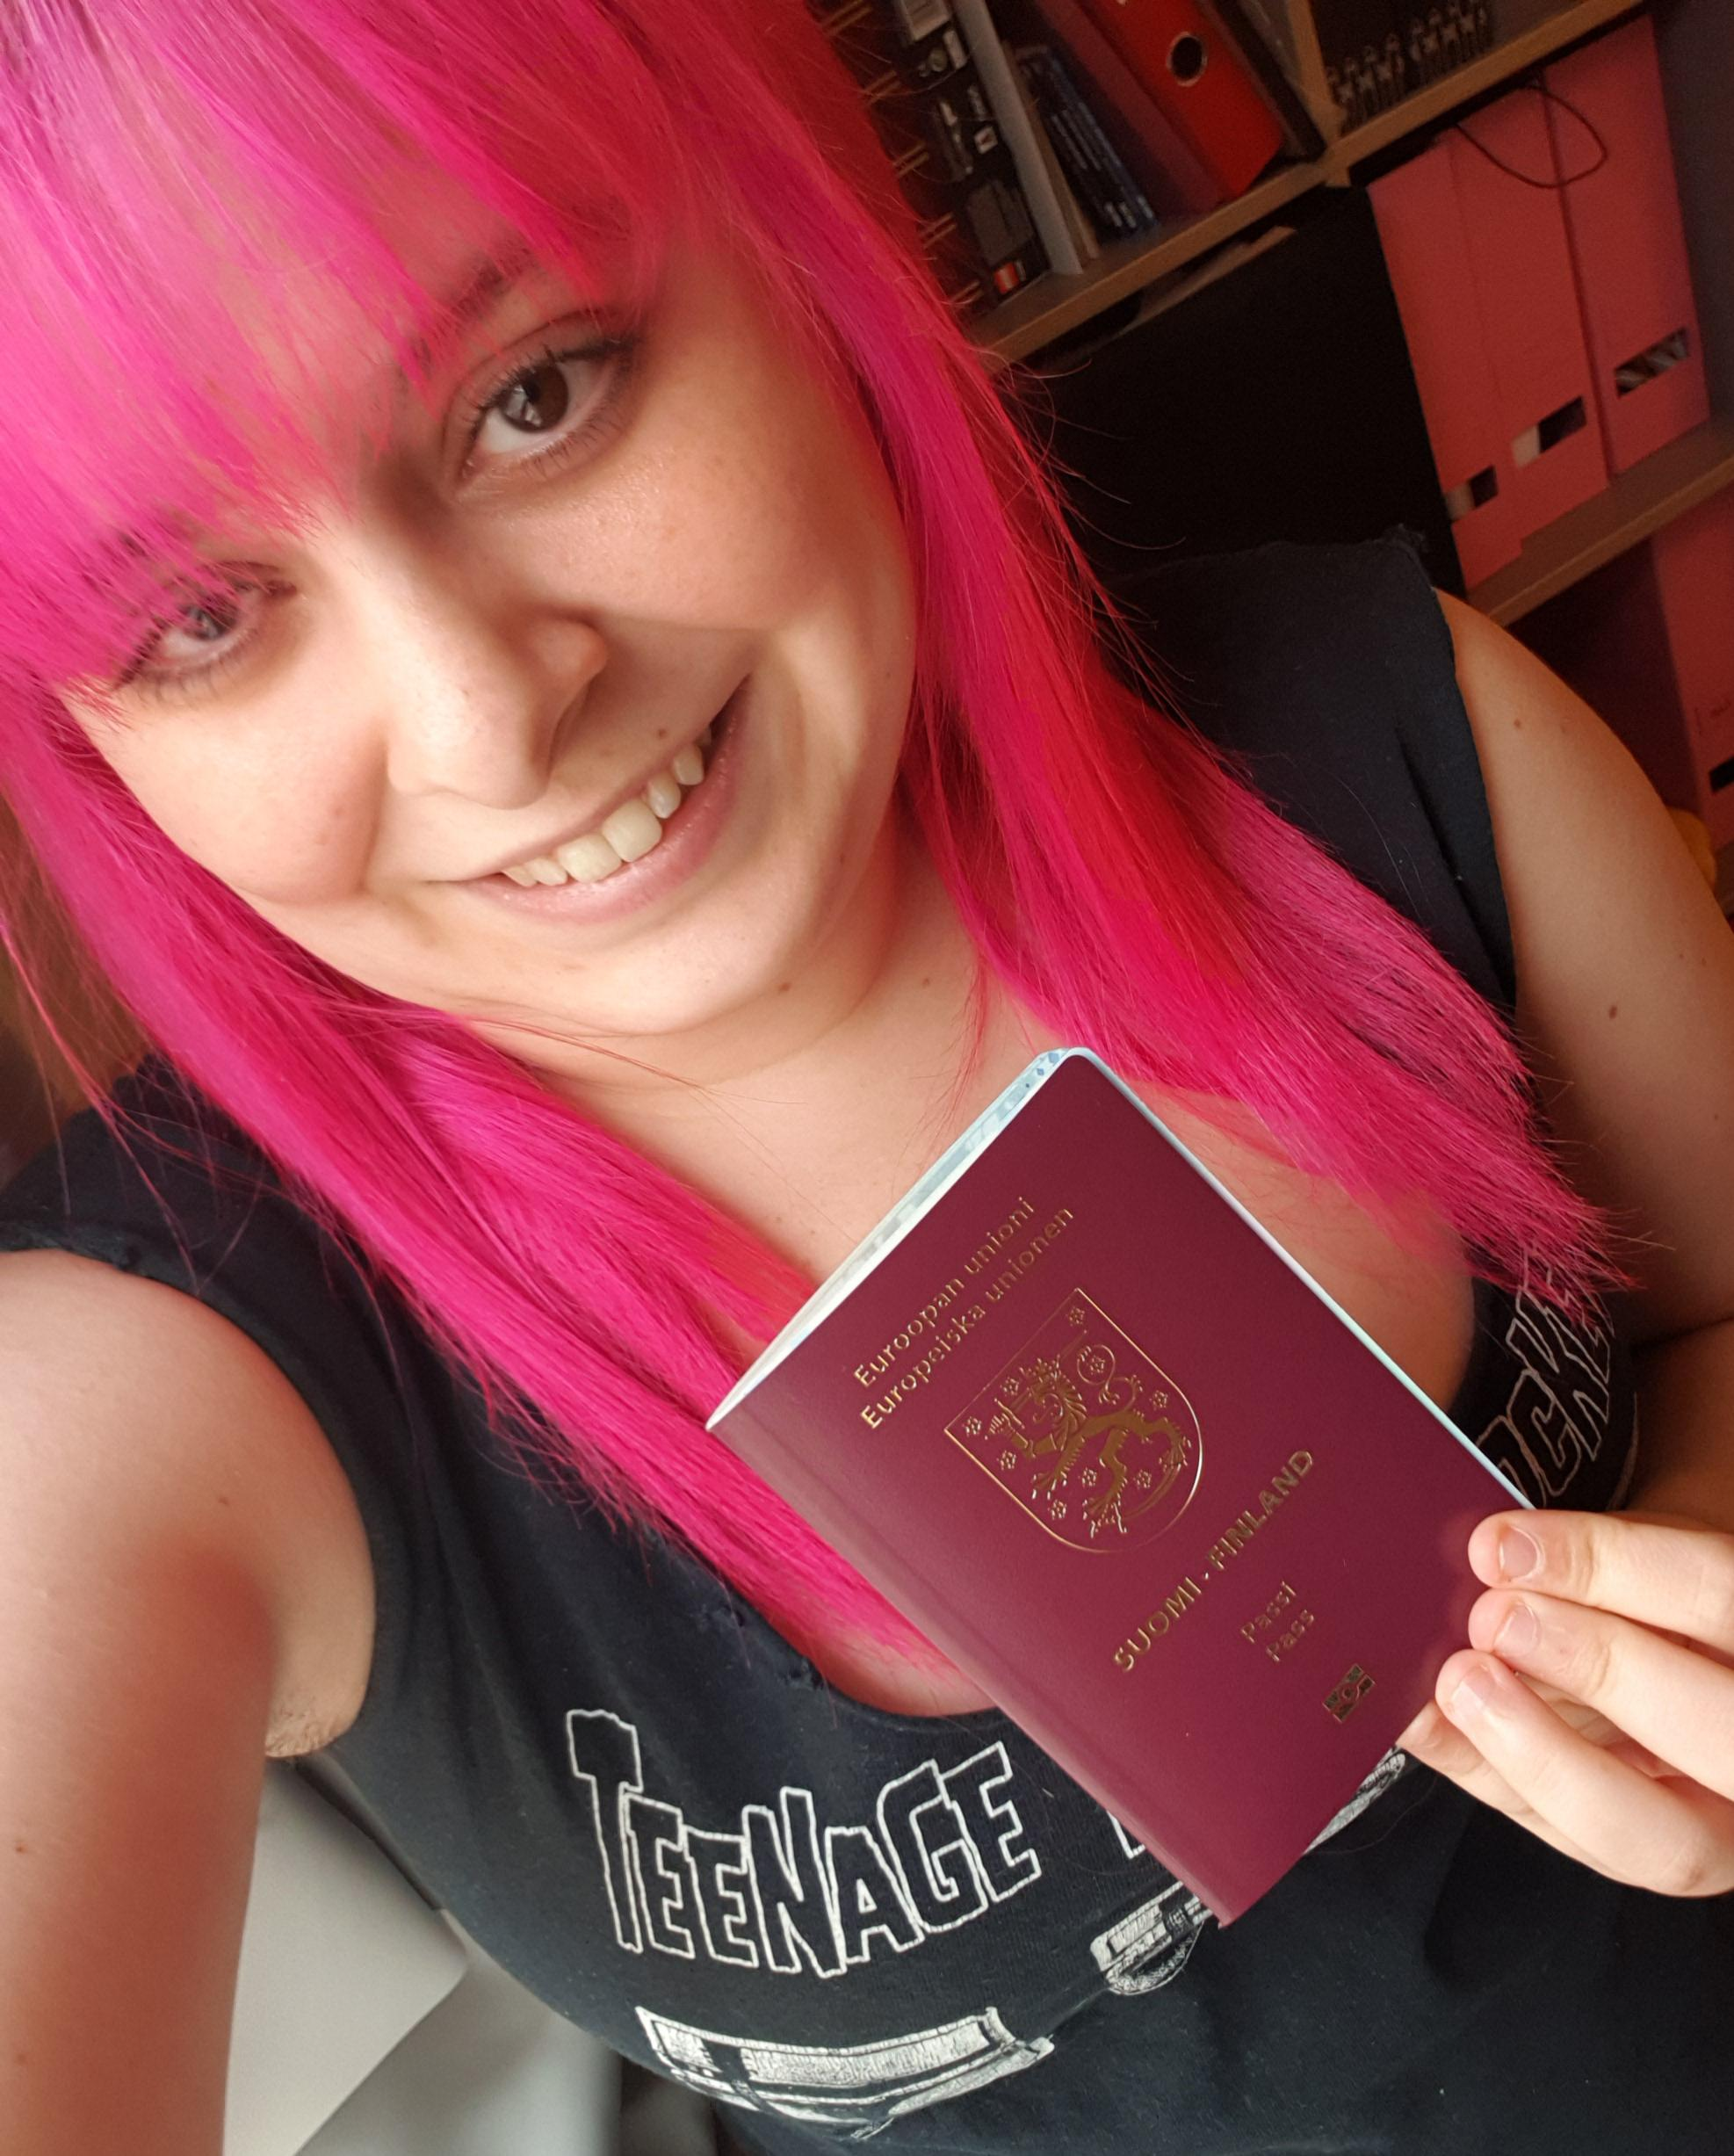 Eight years ago I took an insane risk and moved to Finland from PA with just a suitcase and without knowing Finnish. Today I got my Finnish passport!